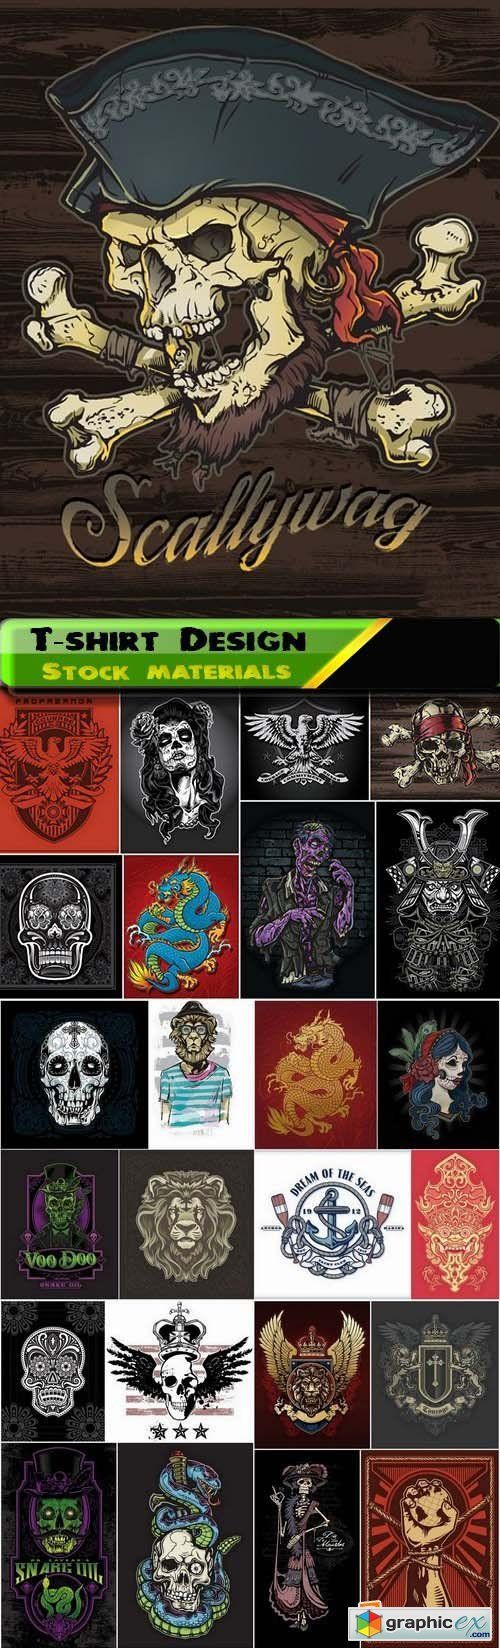 T shirt design 7 25xeps - T Shirt Design Elements In Vector From Stock 32 25xeps